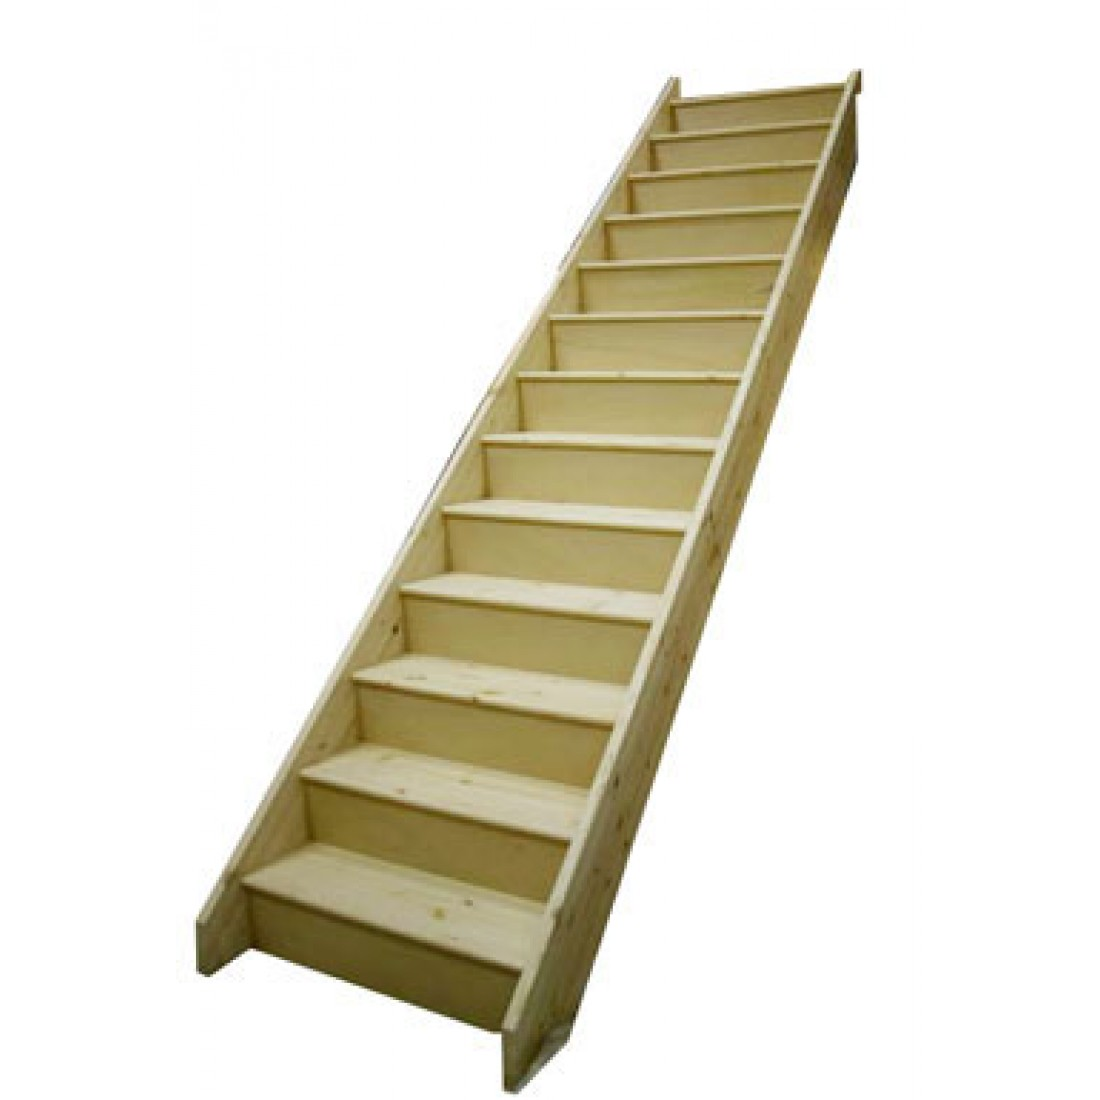 Timber Staircase Price: Straight Flight Whitewood Staircase 855mm